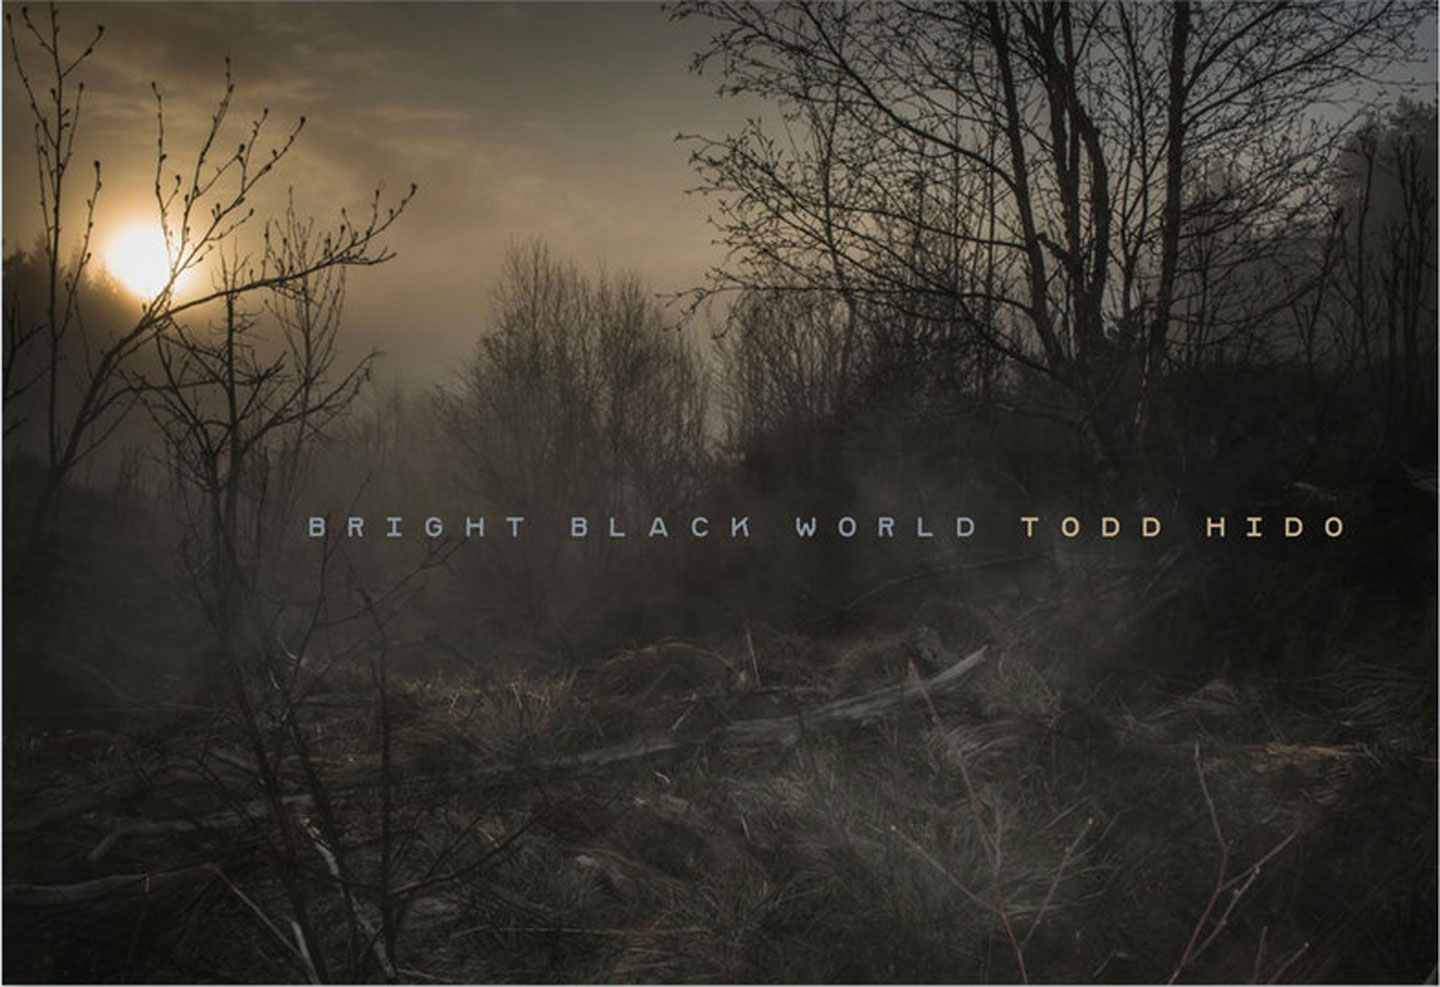 Todd Hido: Bright Black World, Special Limited Edition, Artist's Proof (with AP Archival Pigment Print) [SIGNED]